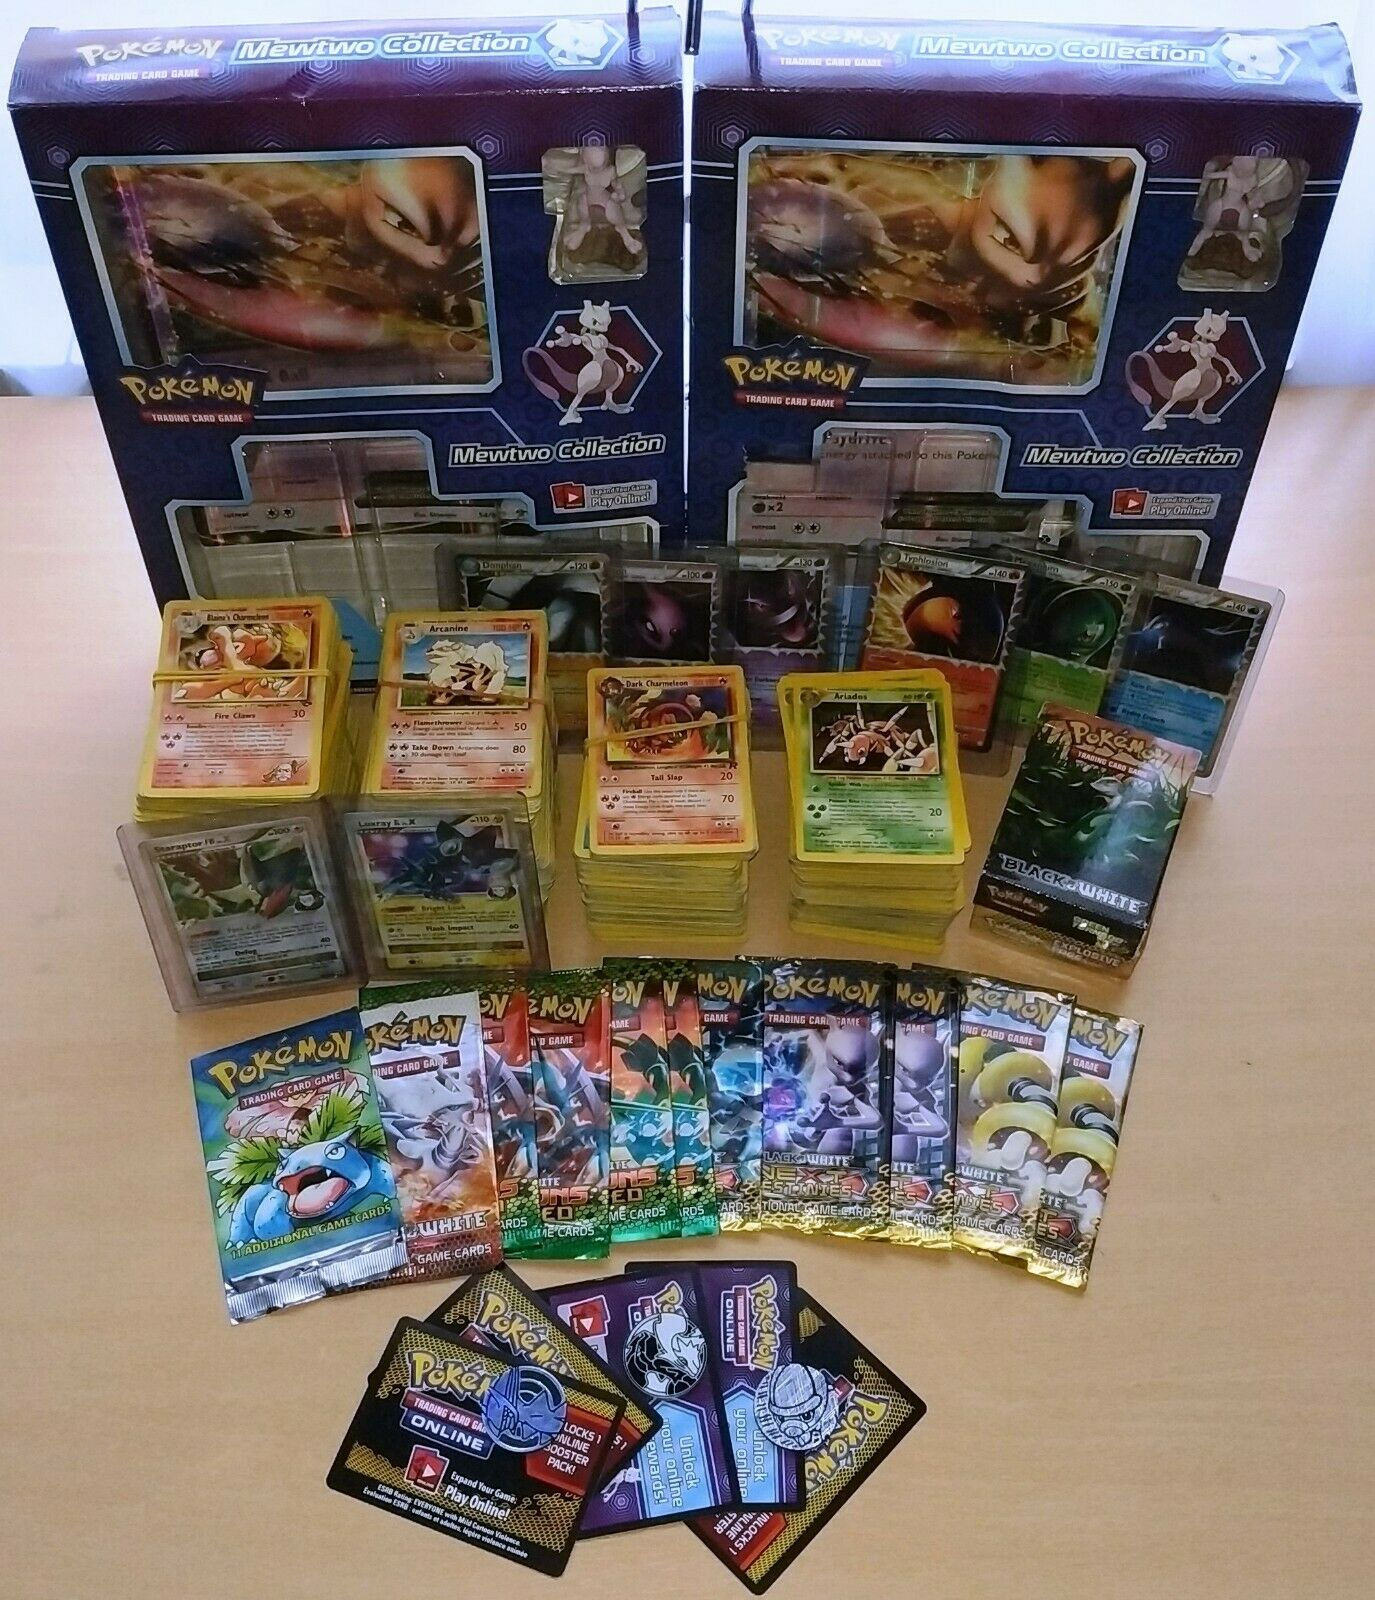 1500+ Pokemon Card Collection Holos Holos Holos Rares Commons Uncommons Promo TCG Figures ac357a